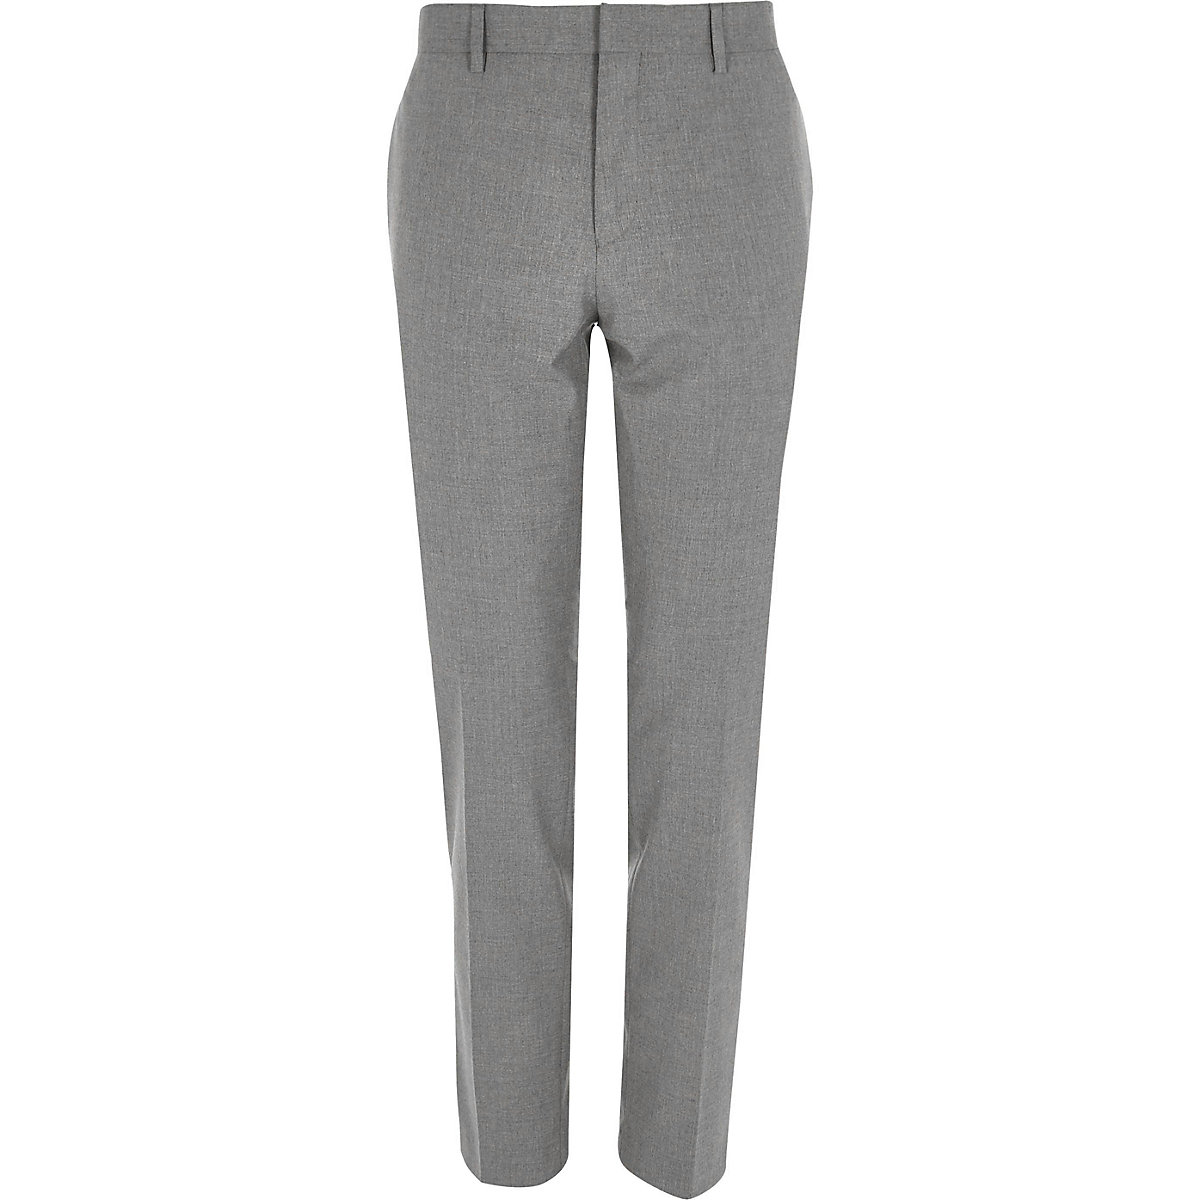 Light grey skinny suit trousers